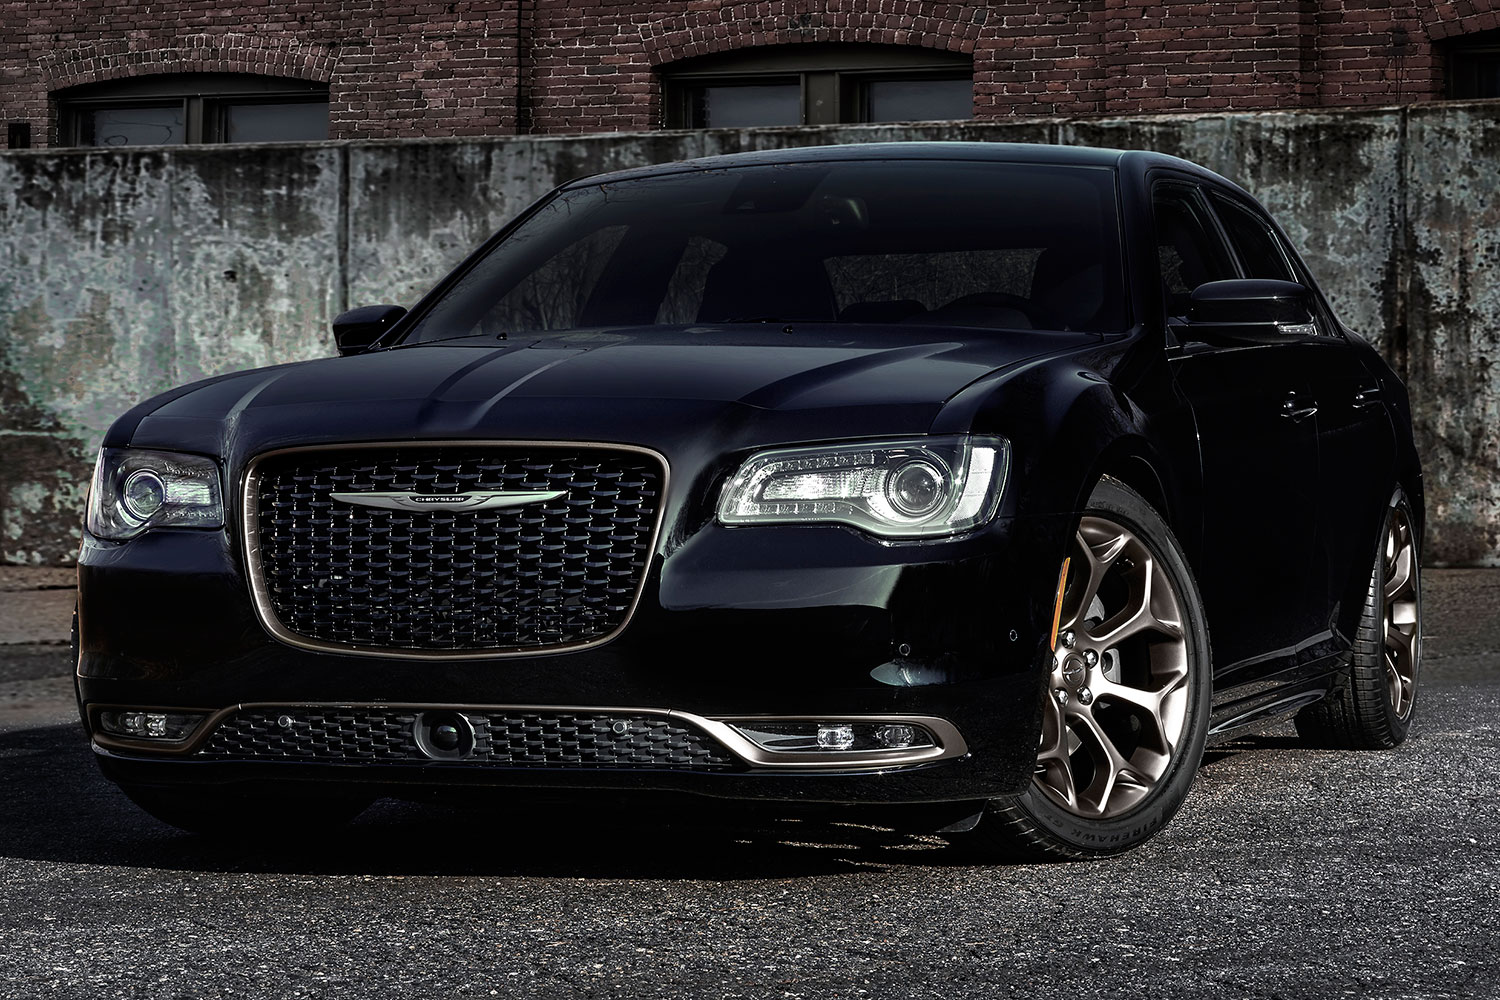 2019 Chrysler 300 Motown Edition photo - 3